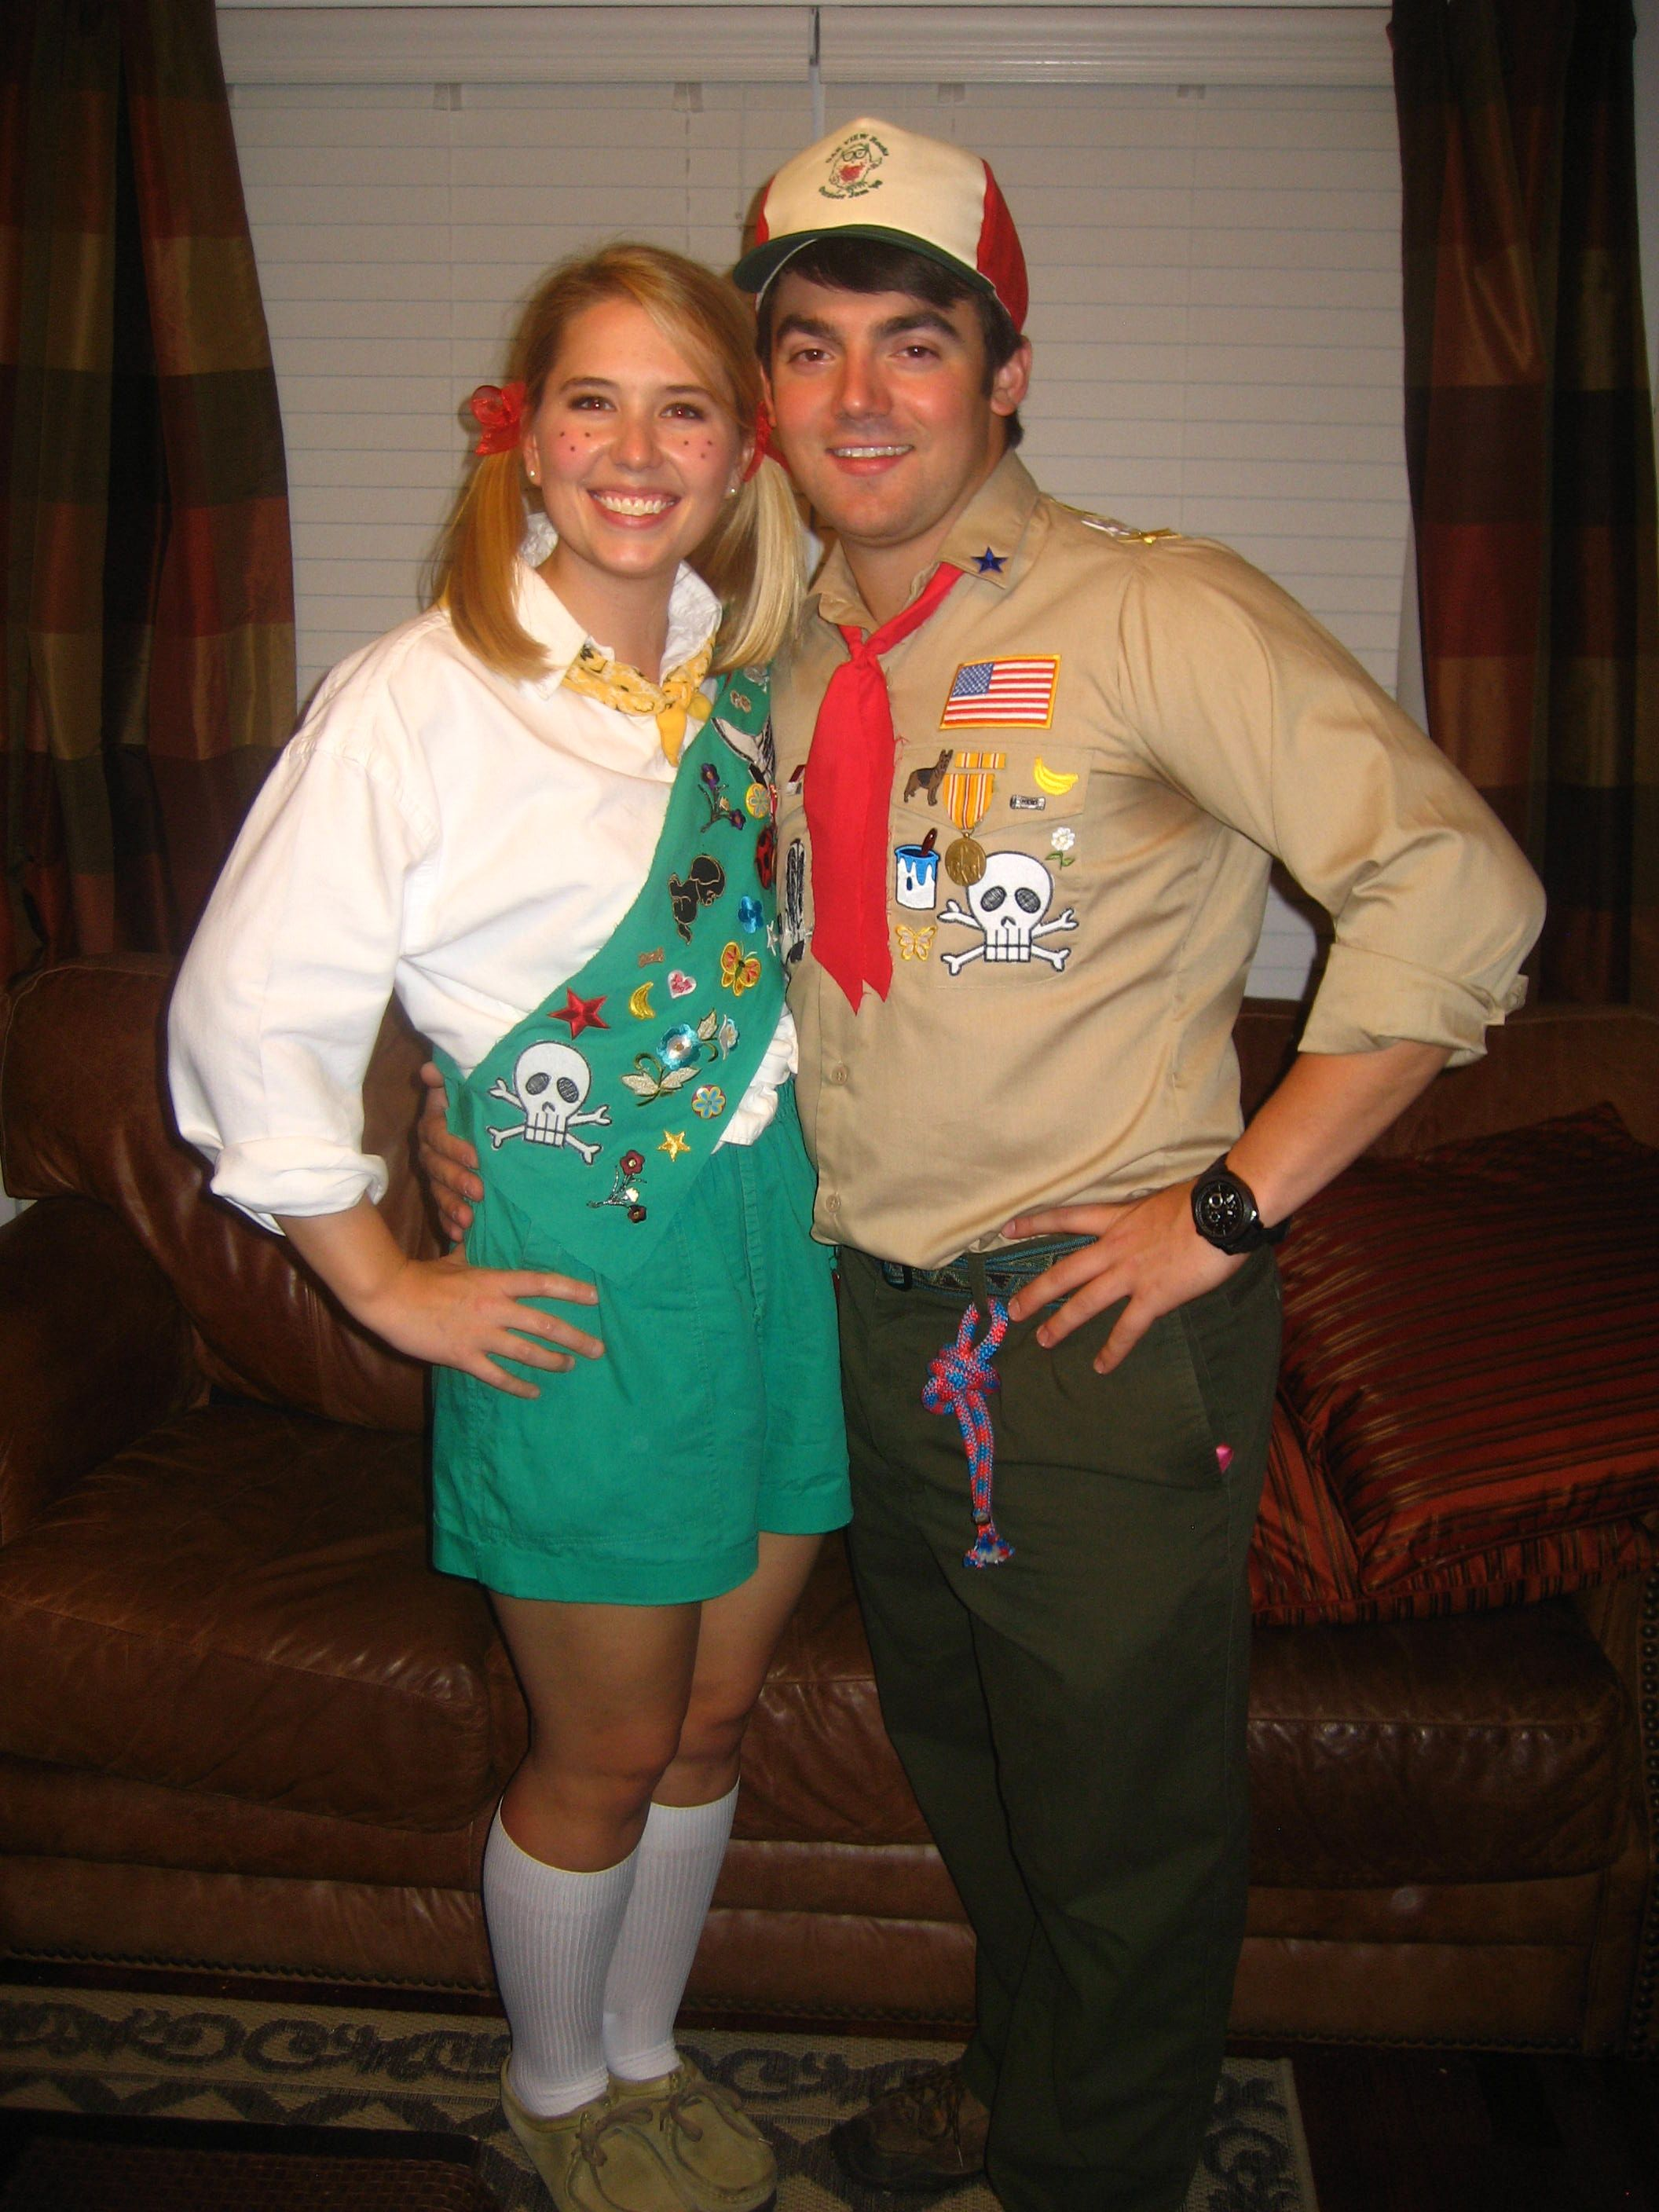 cute halloween costume girl scout/boy scout | all holidays in 2018